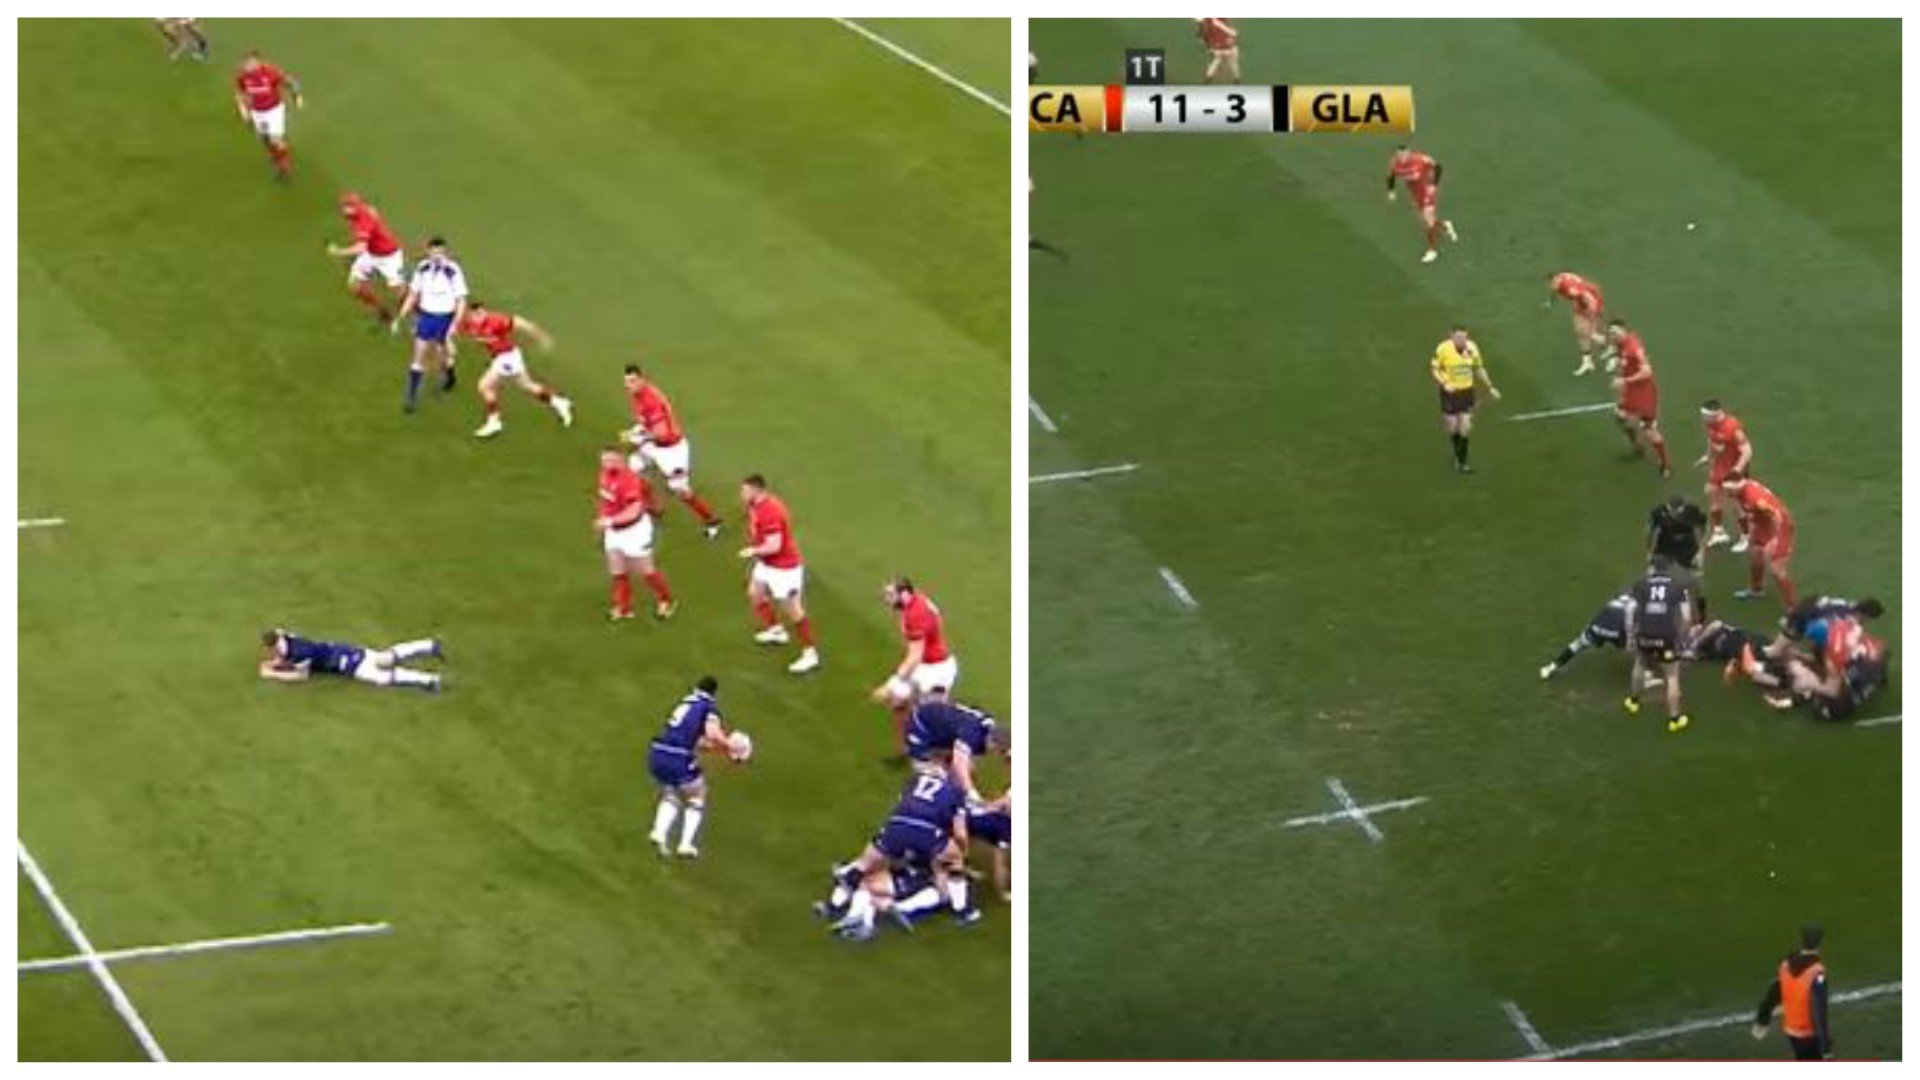 CHILLING: Ali Price and Gareth Davies recreate 'an IDENTICAL' intercept try from 6 Nations in Pro14